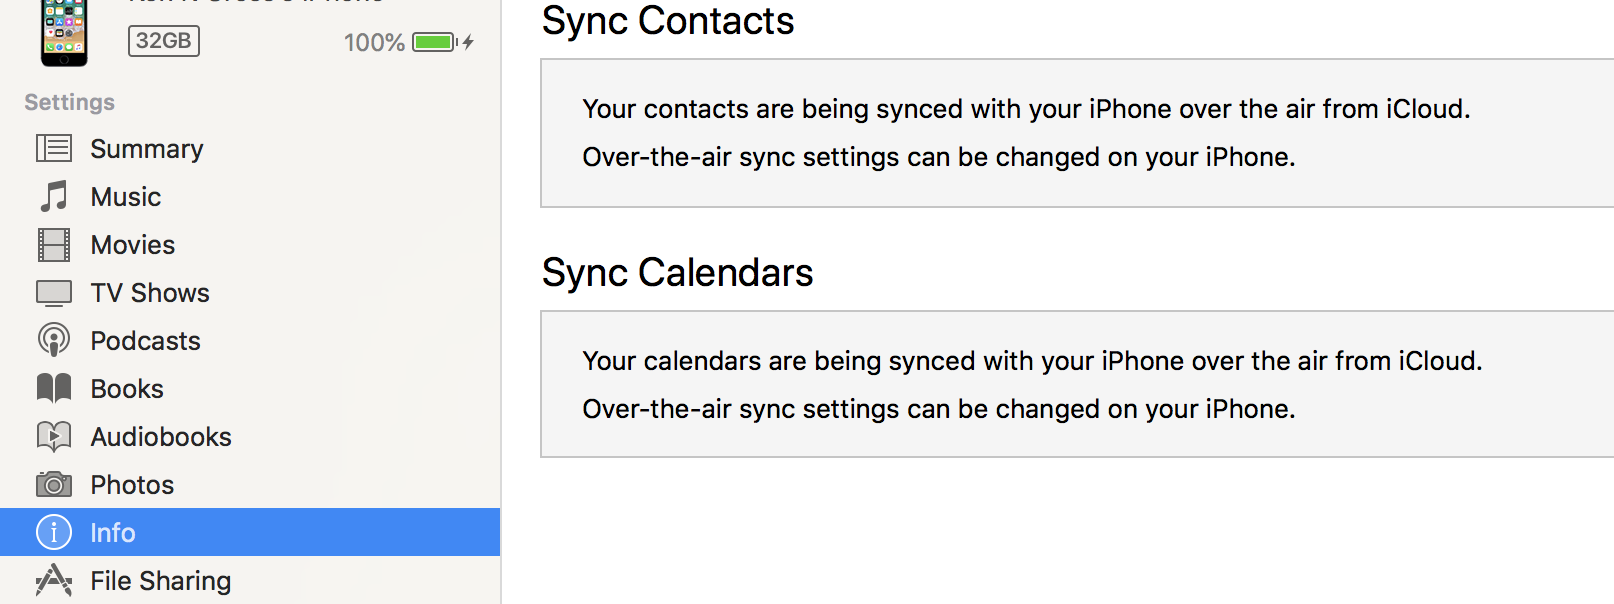 How to sync contacts from iPhone to Mac without iCloud